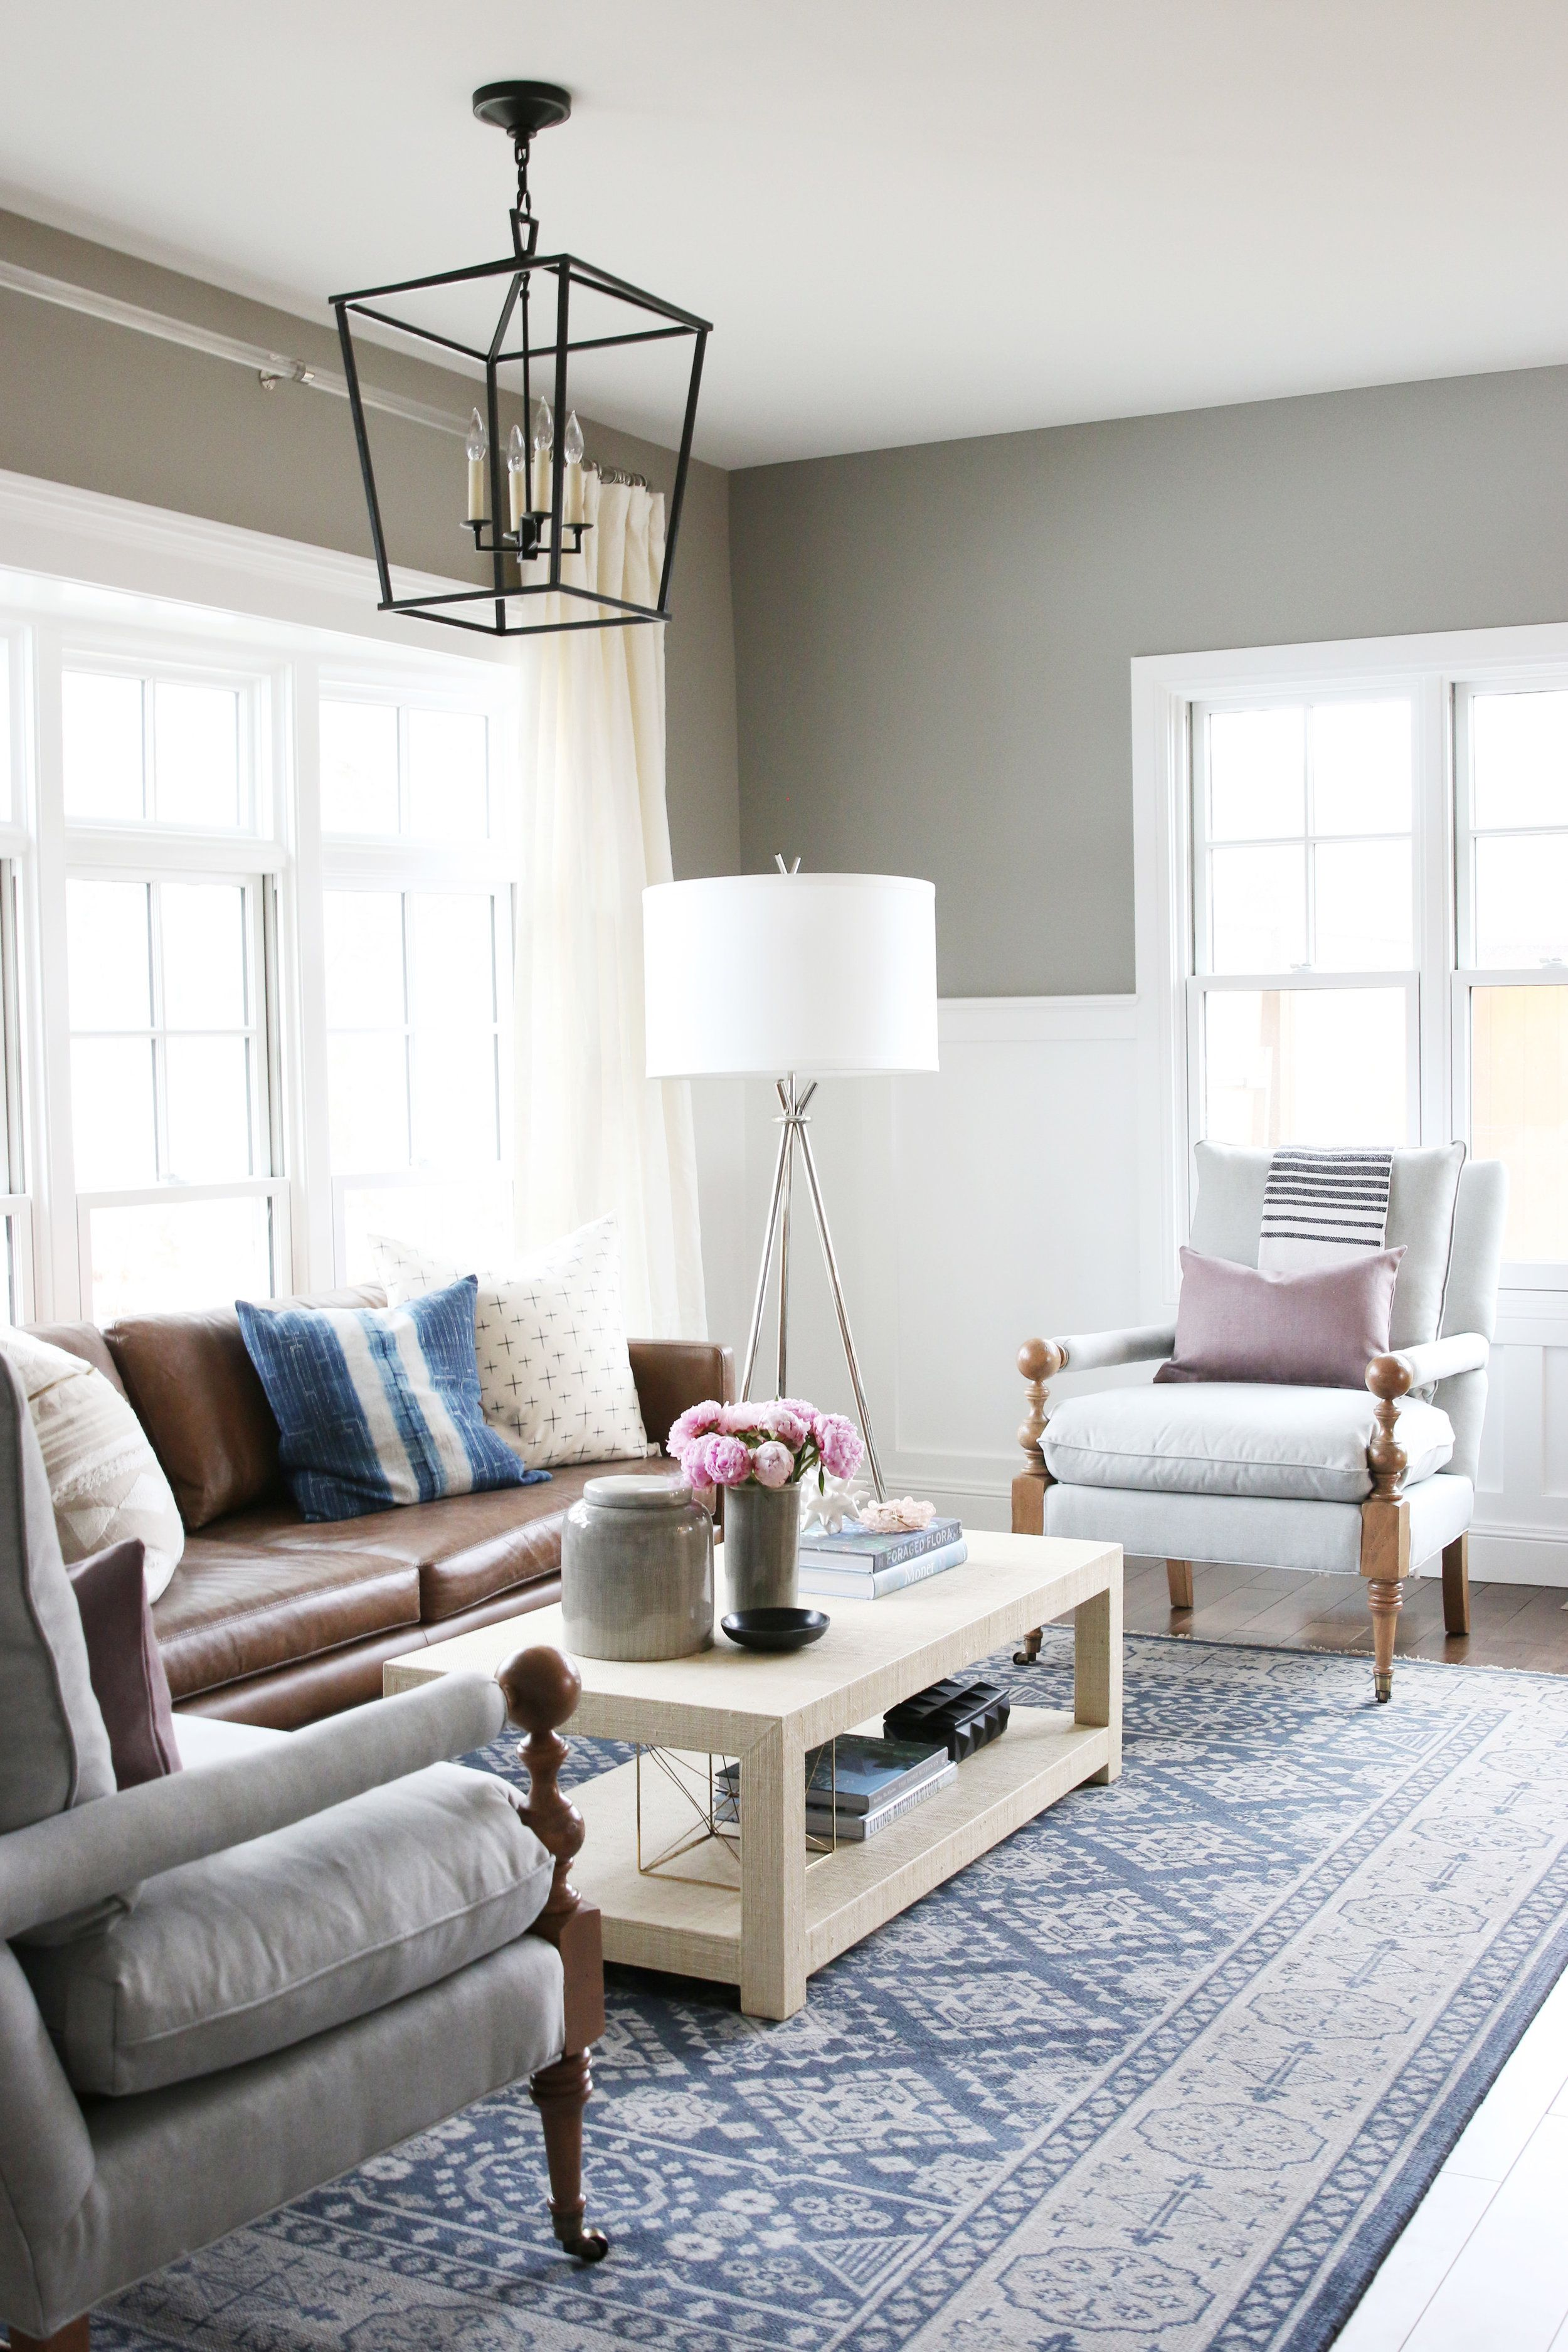 Parley Project Reveal | Studio mcgee, Studio and Living rooms